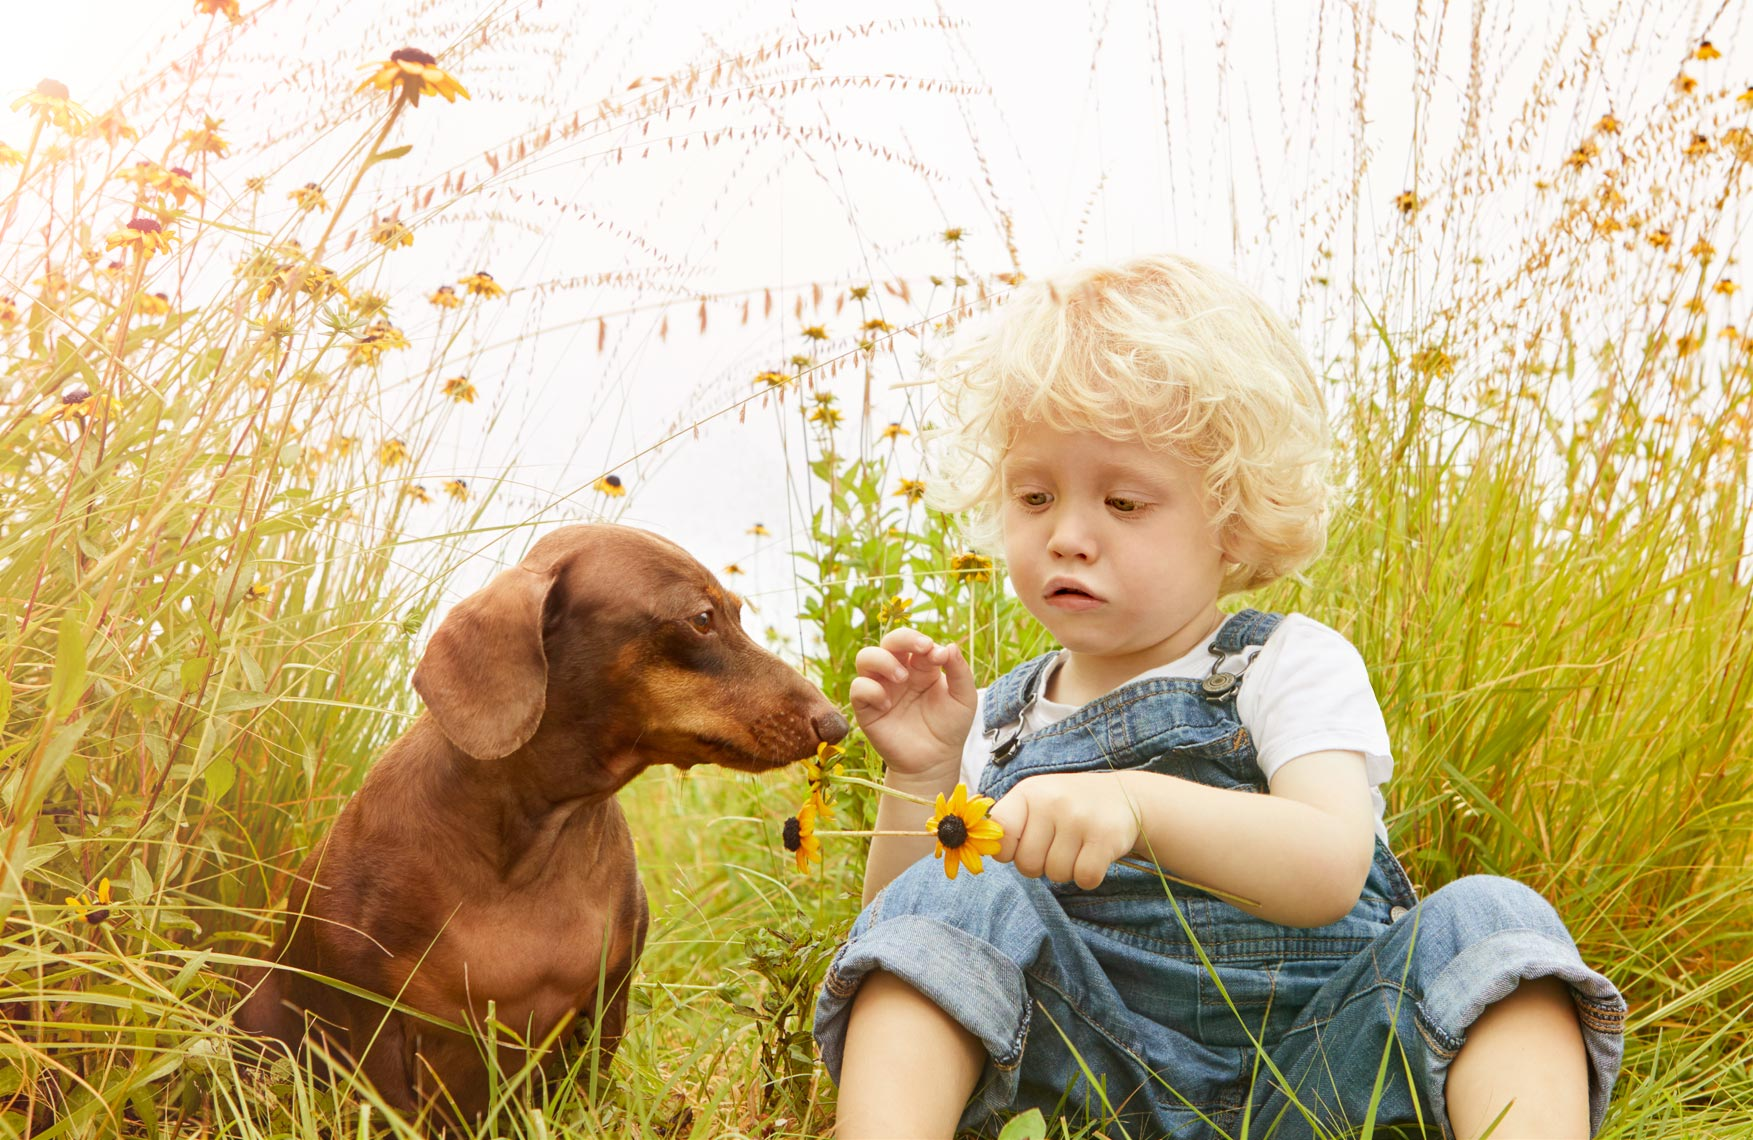 Dachshund smelling flower with boy